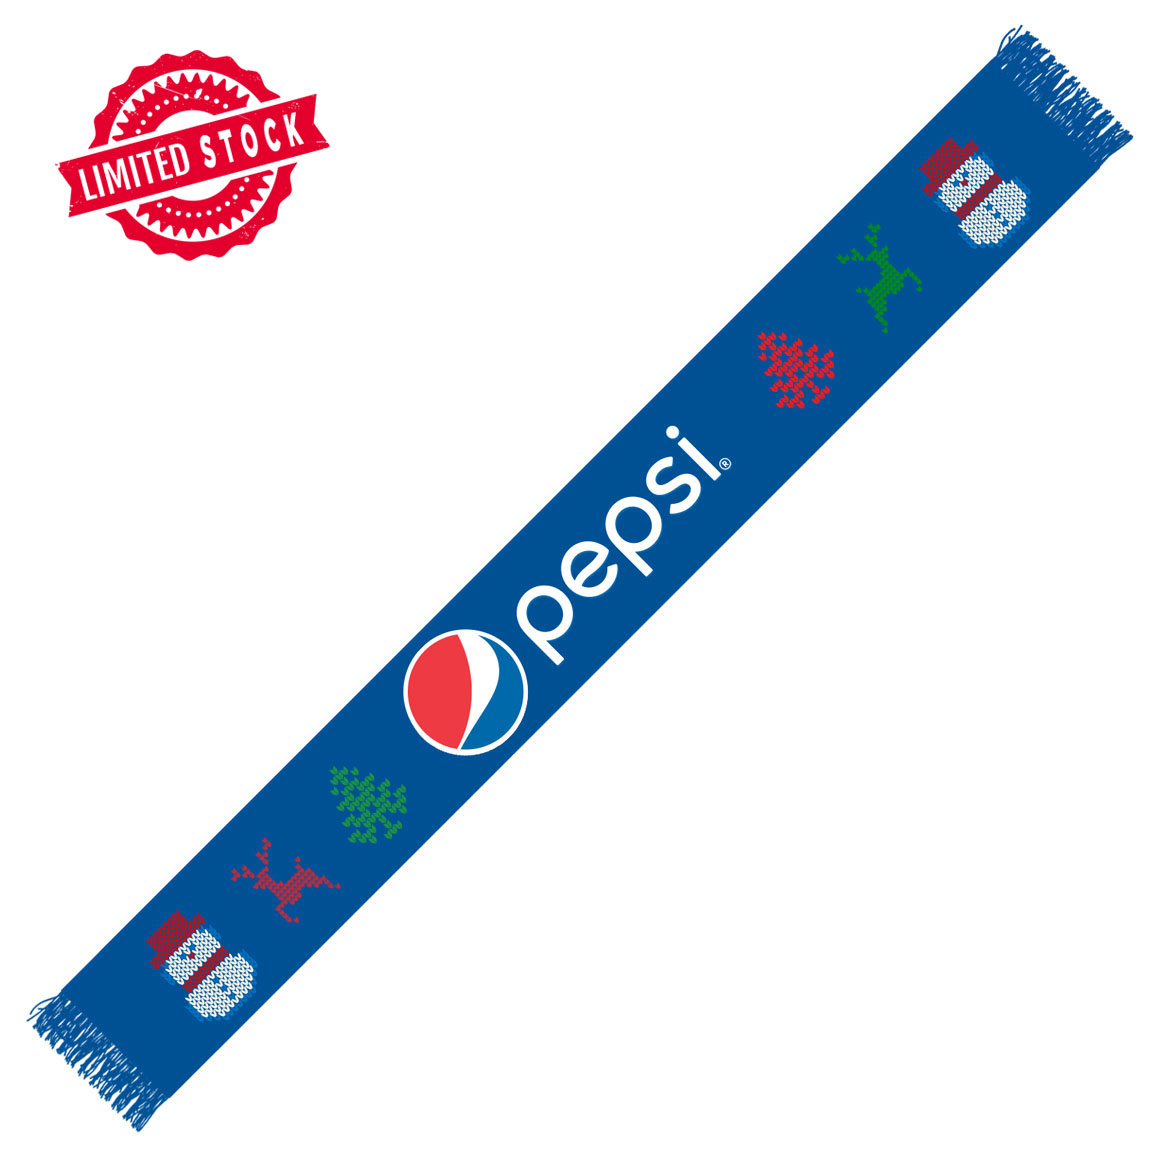 The Pepsi Holiday Scarf